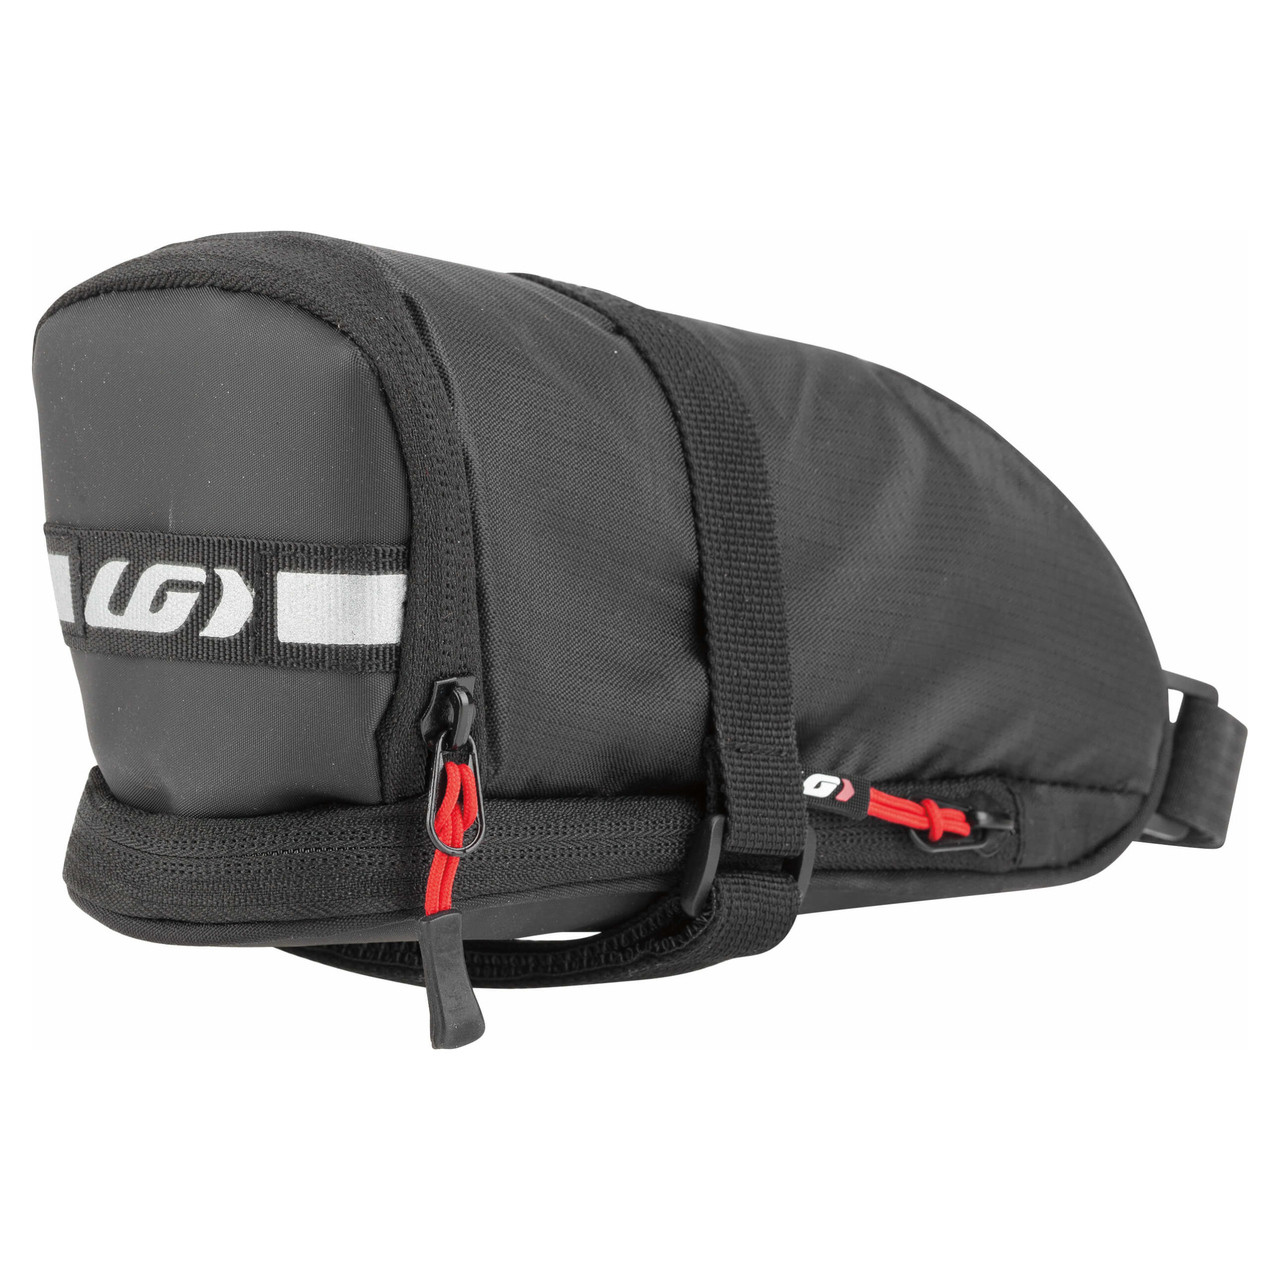 Louis Garneau Zone Mega Cycling Bag - 2019 price